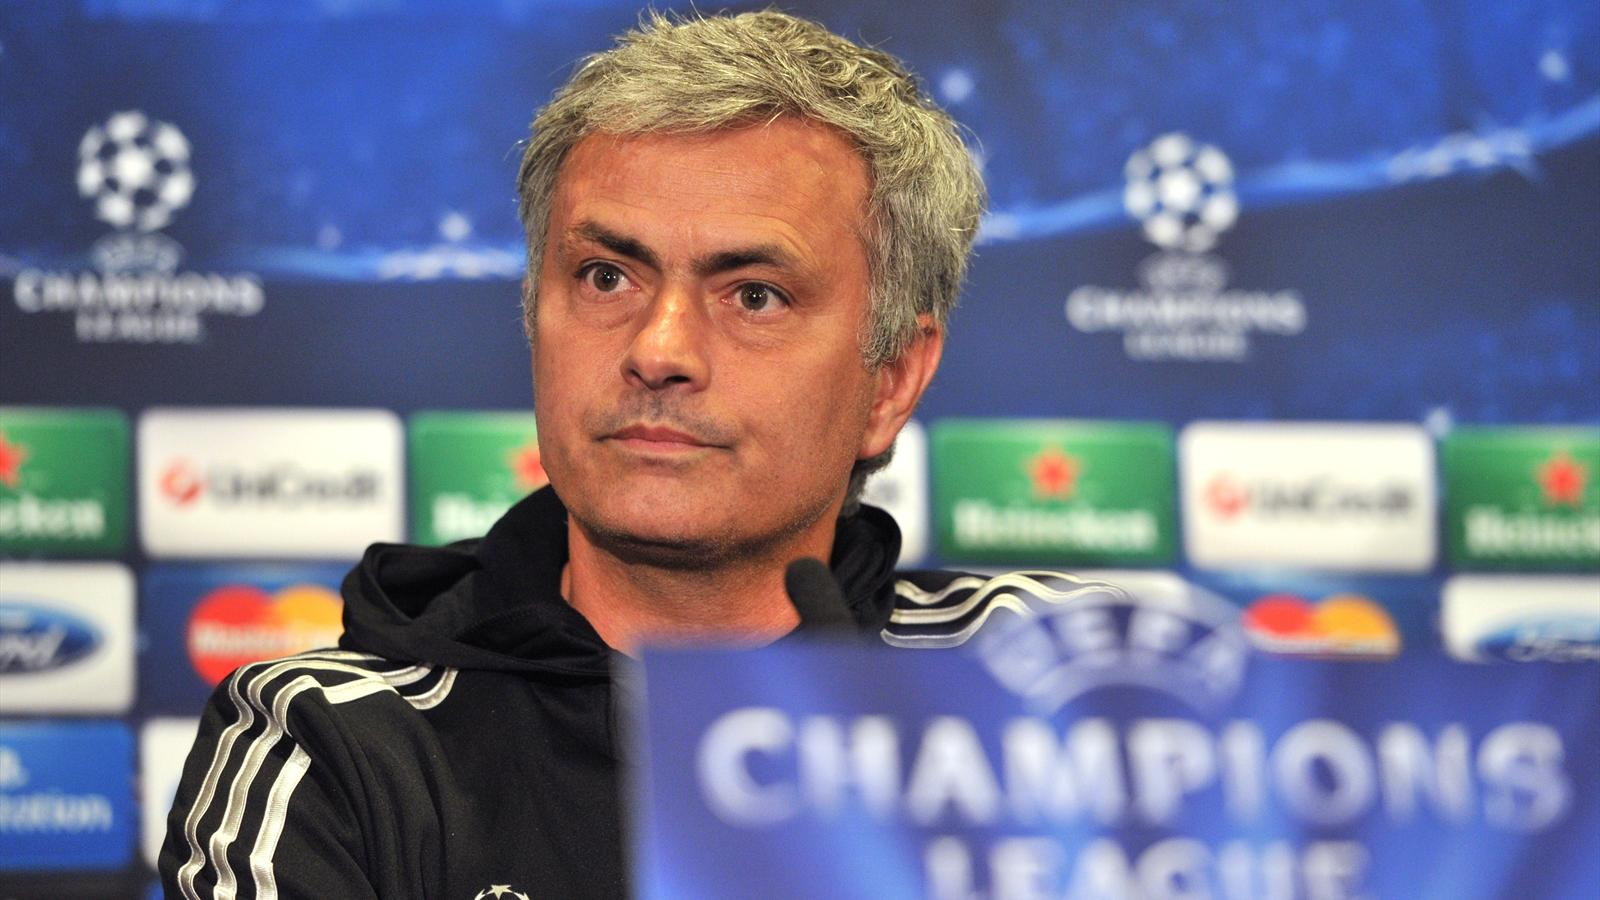 Chelsea's Portuguese manager Jose Mourinho holds a press conference at Stamford Bridge in London, on April 29, 2014 (Getty)